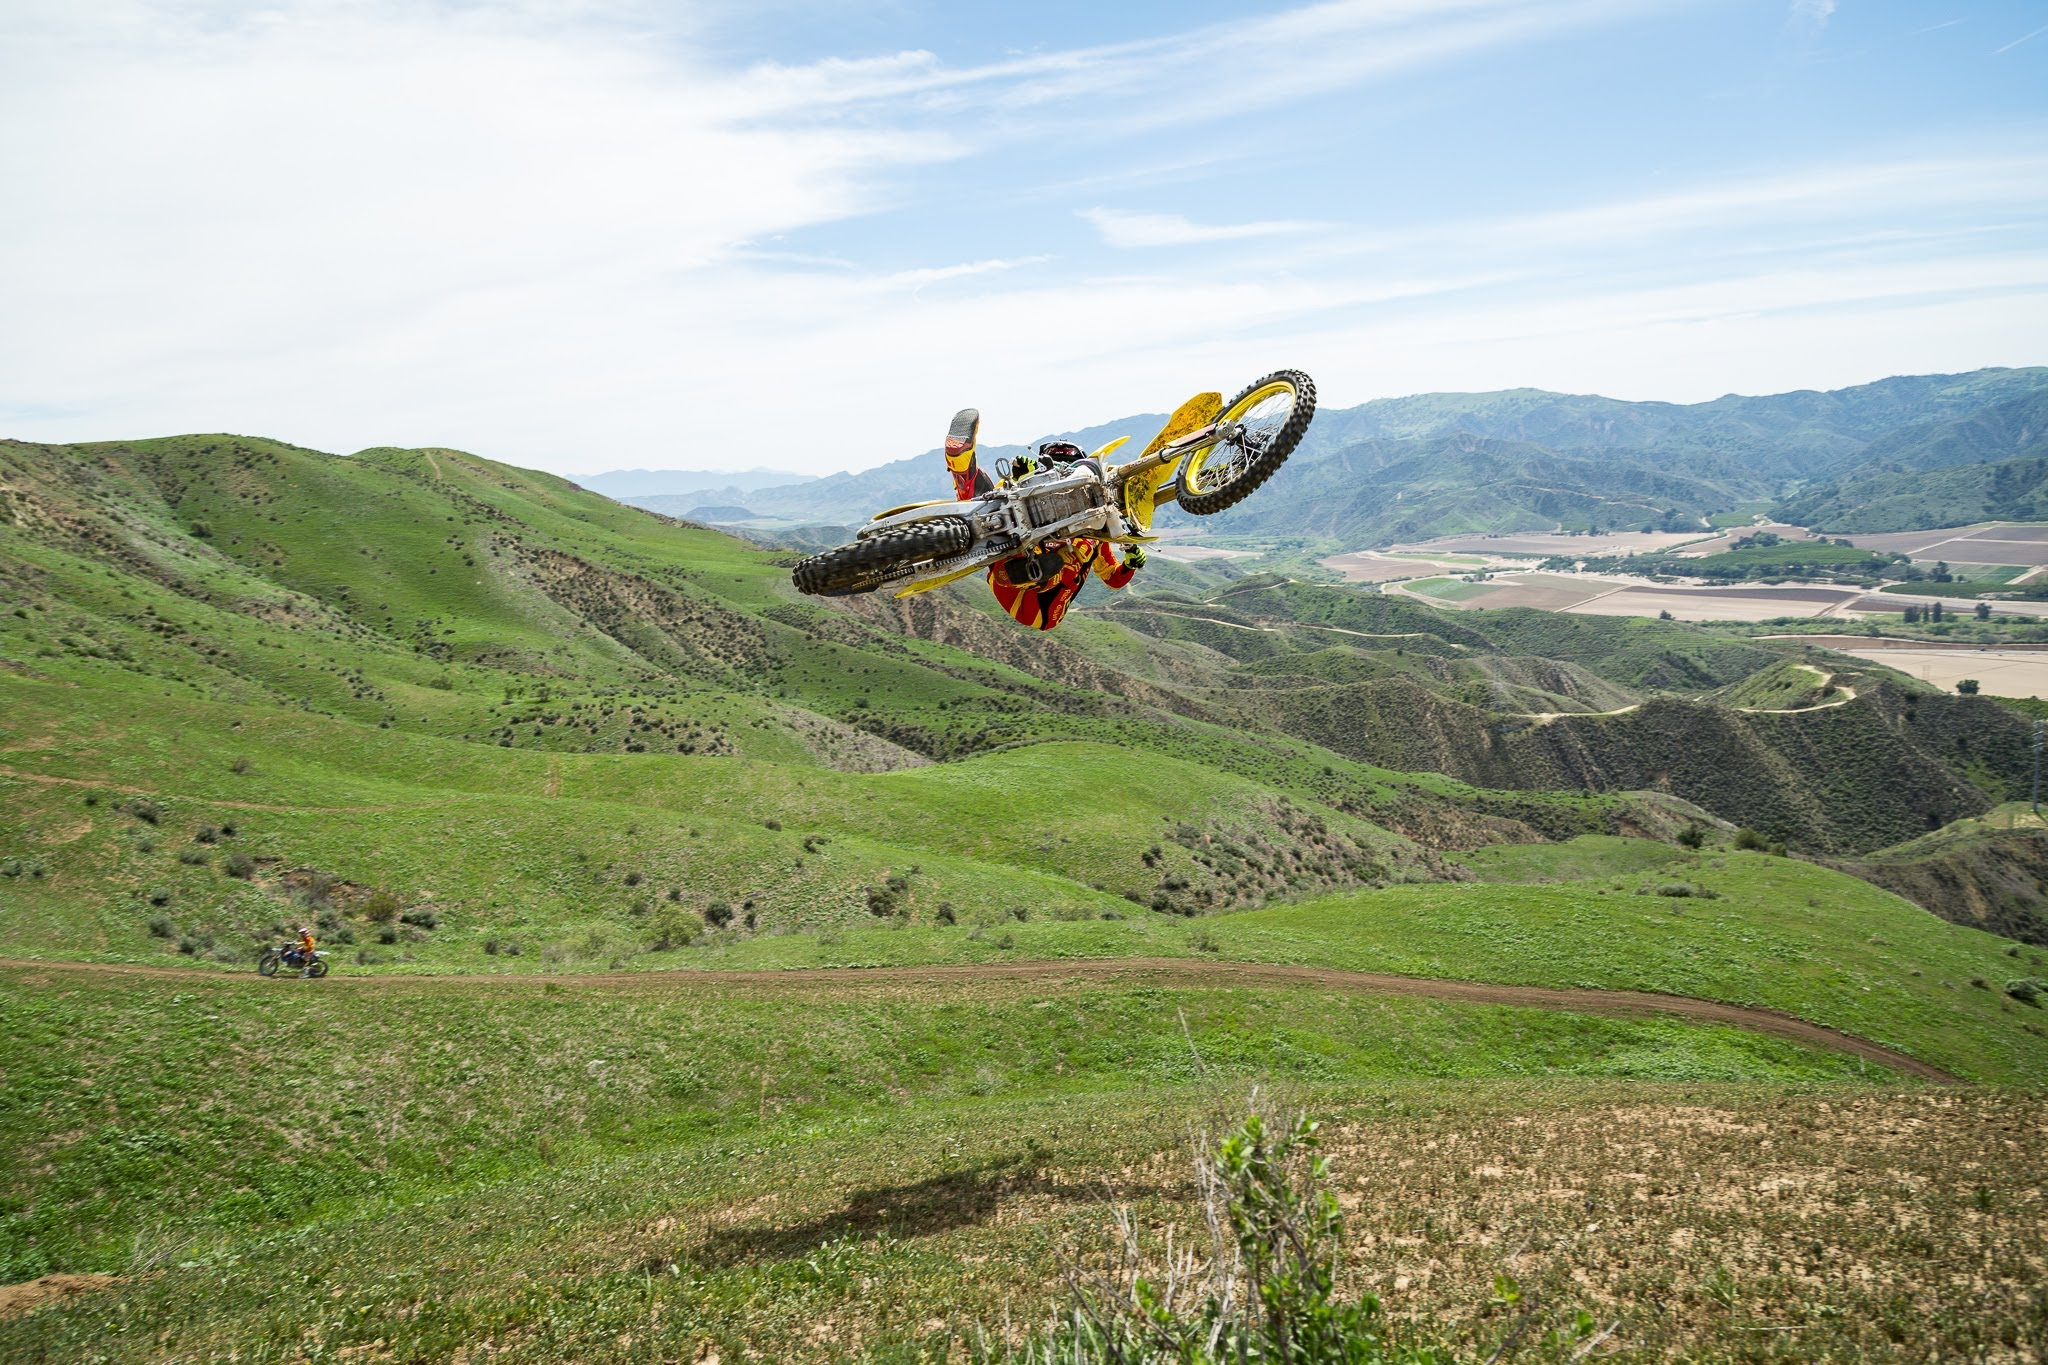 Racer X Films: Coury i McNeil